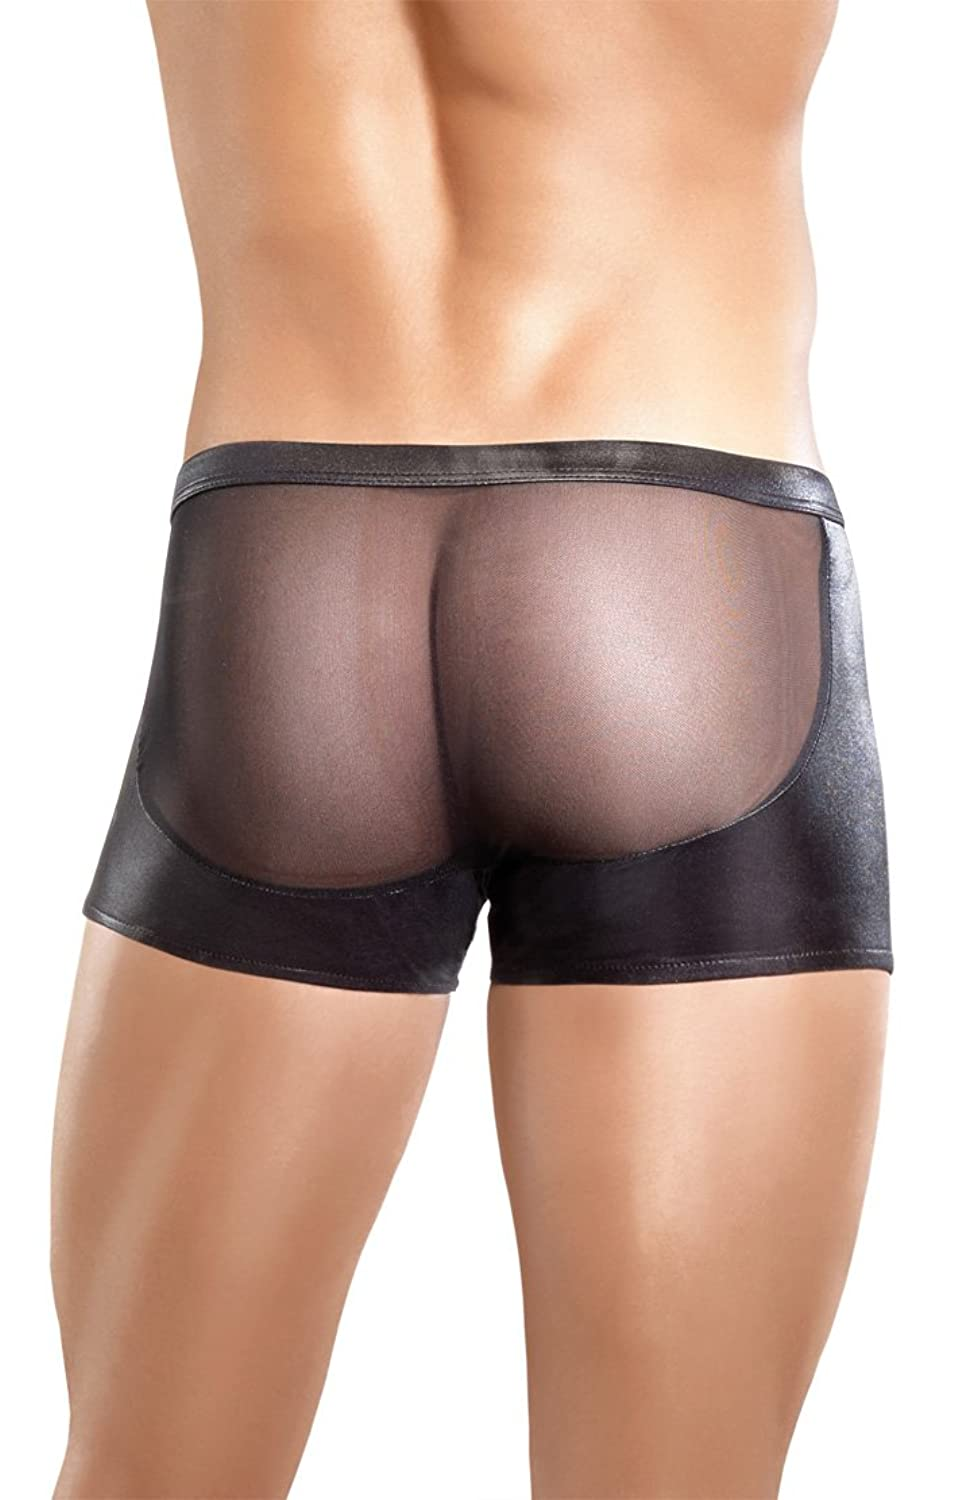 Male Power - Extreme - Butt Lift Shorts